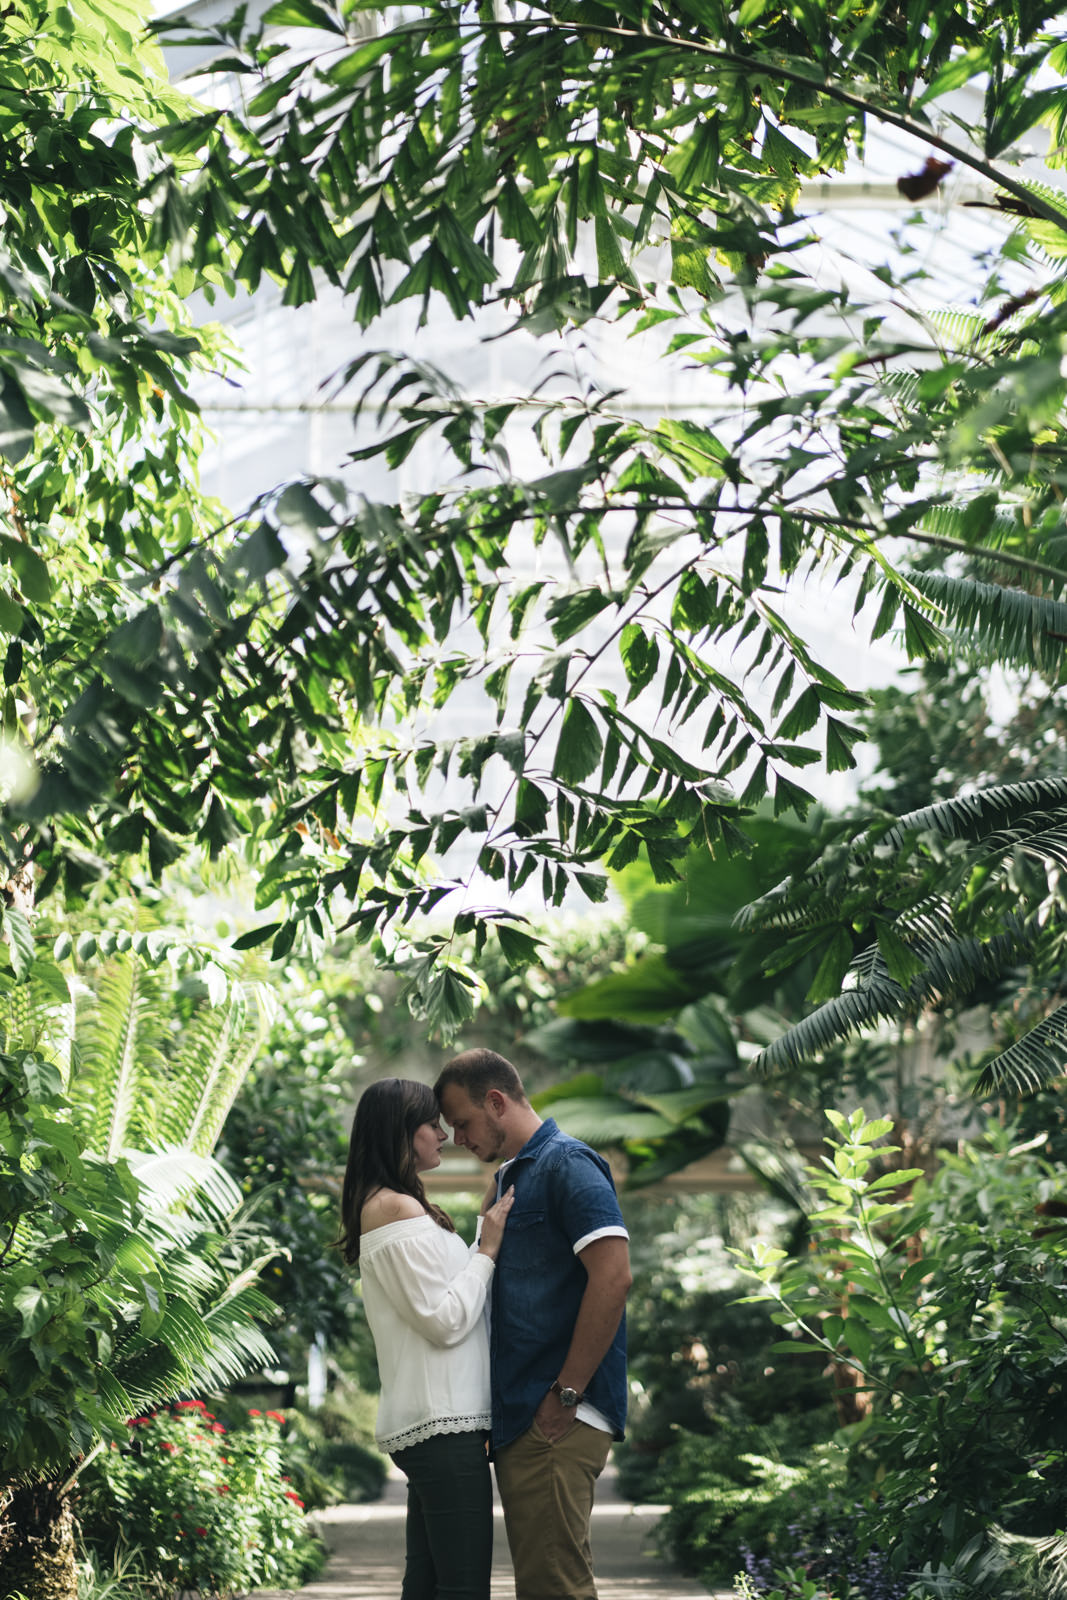 Engagement session portrait in beautiful greenery in Ann Arbor, Michigan.